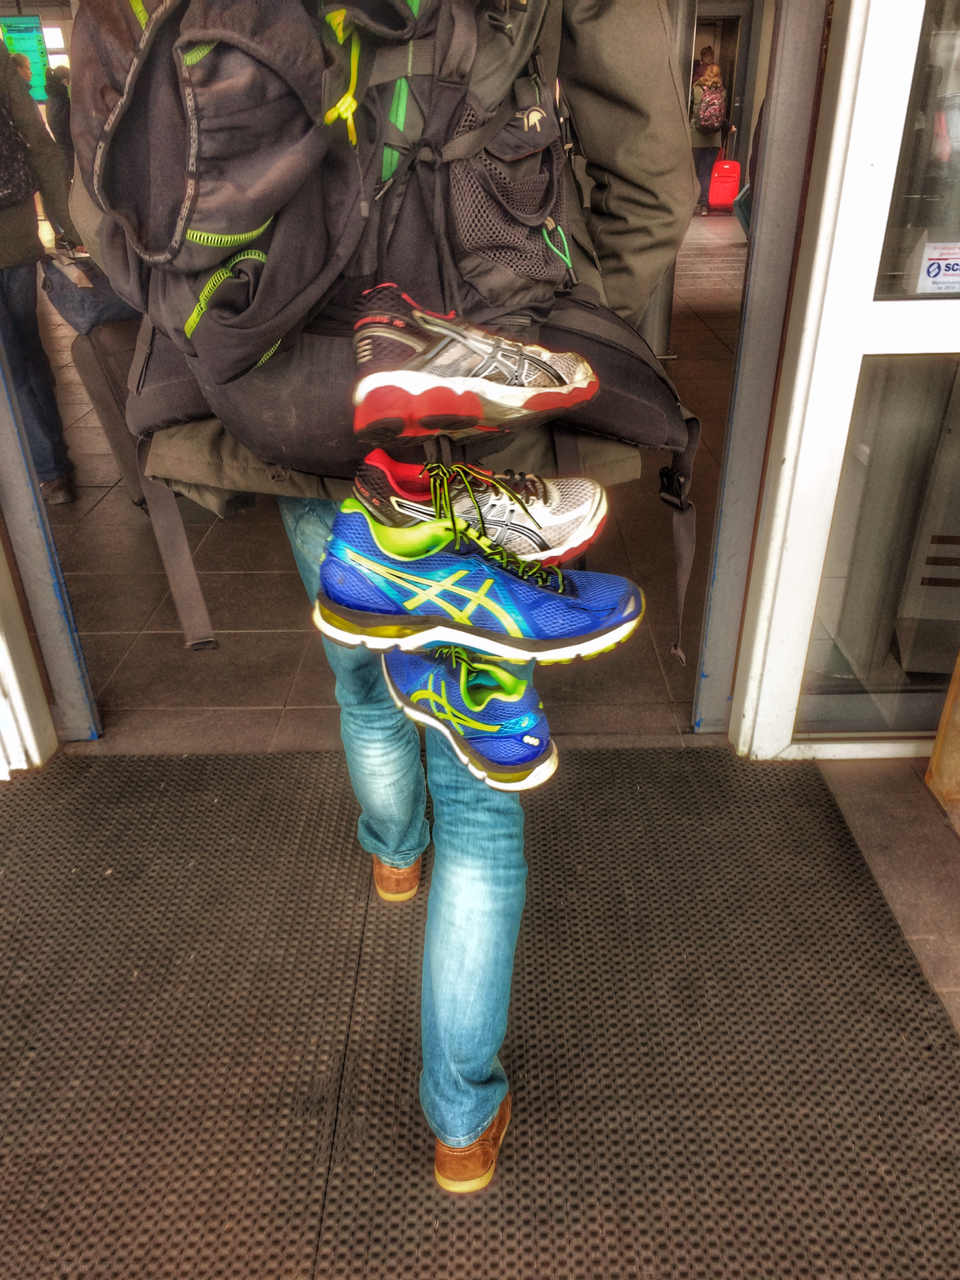 runner rucksack sport shoes schoenen